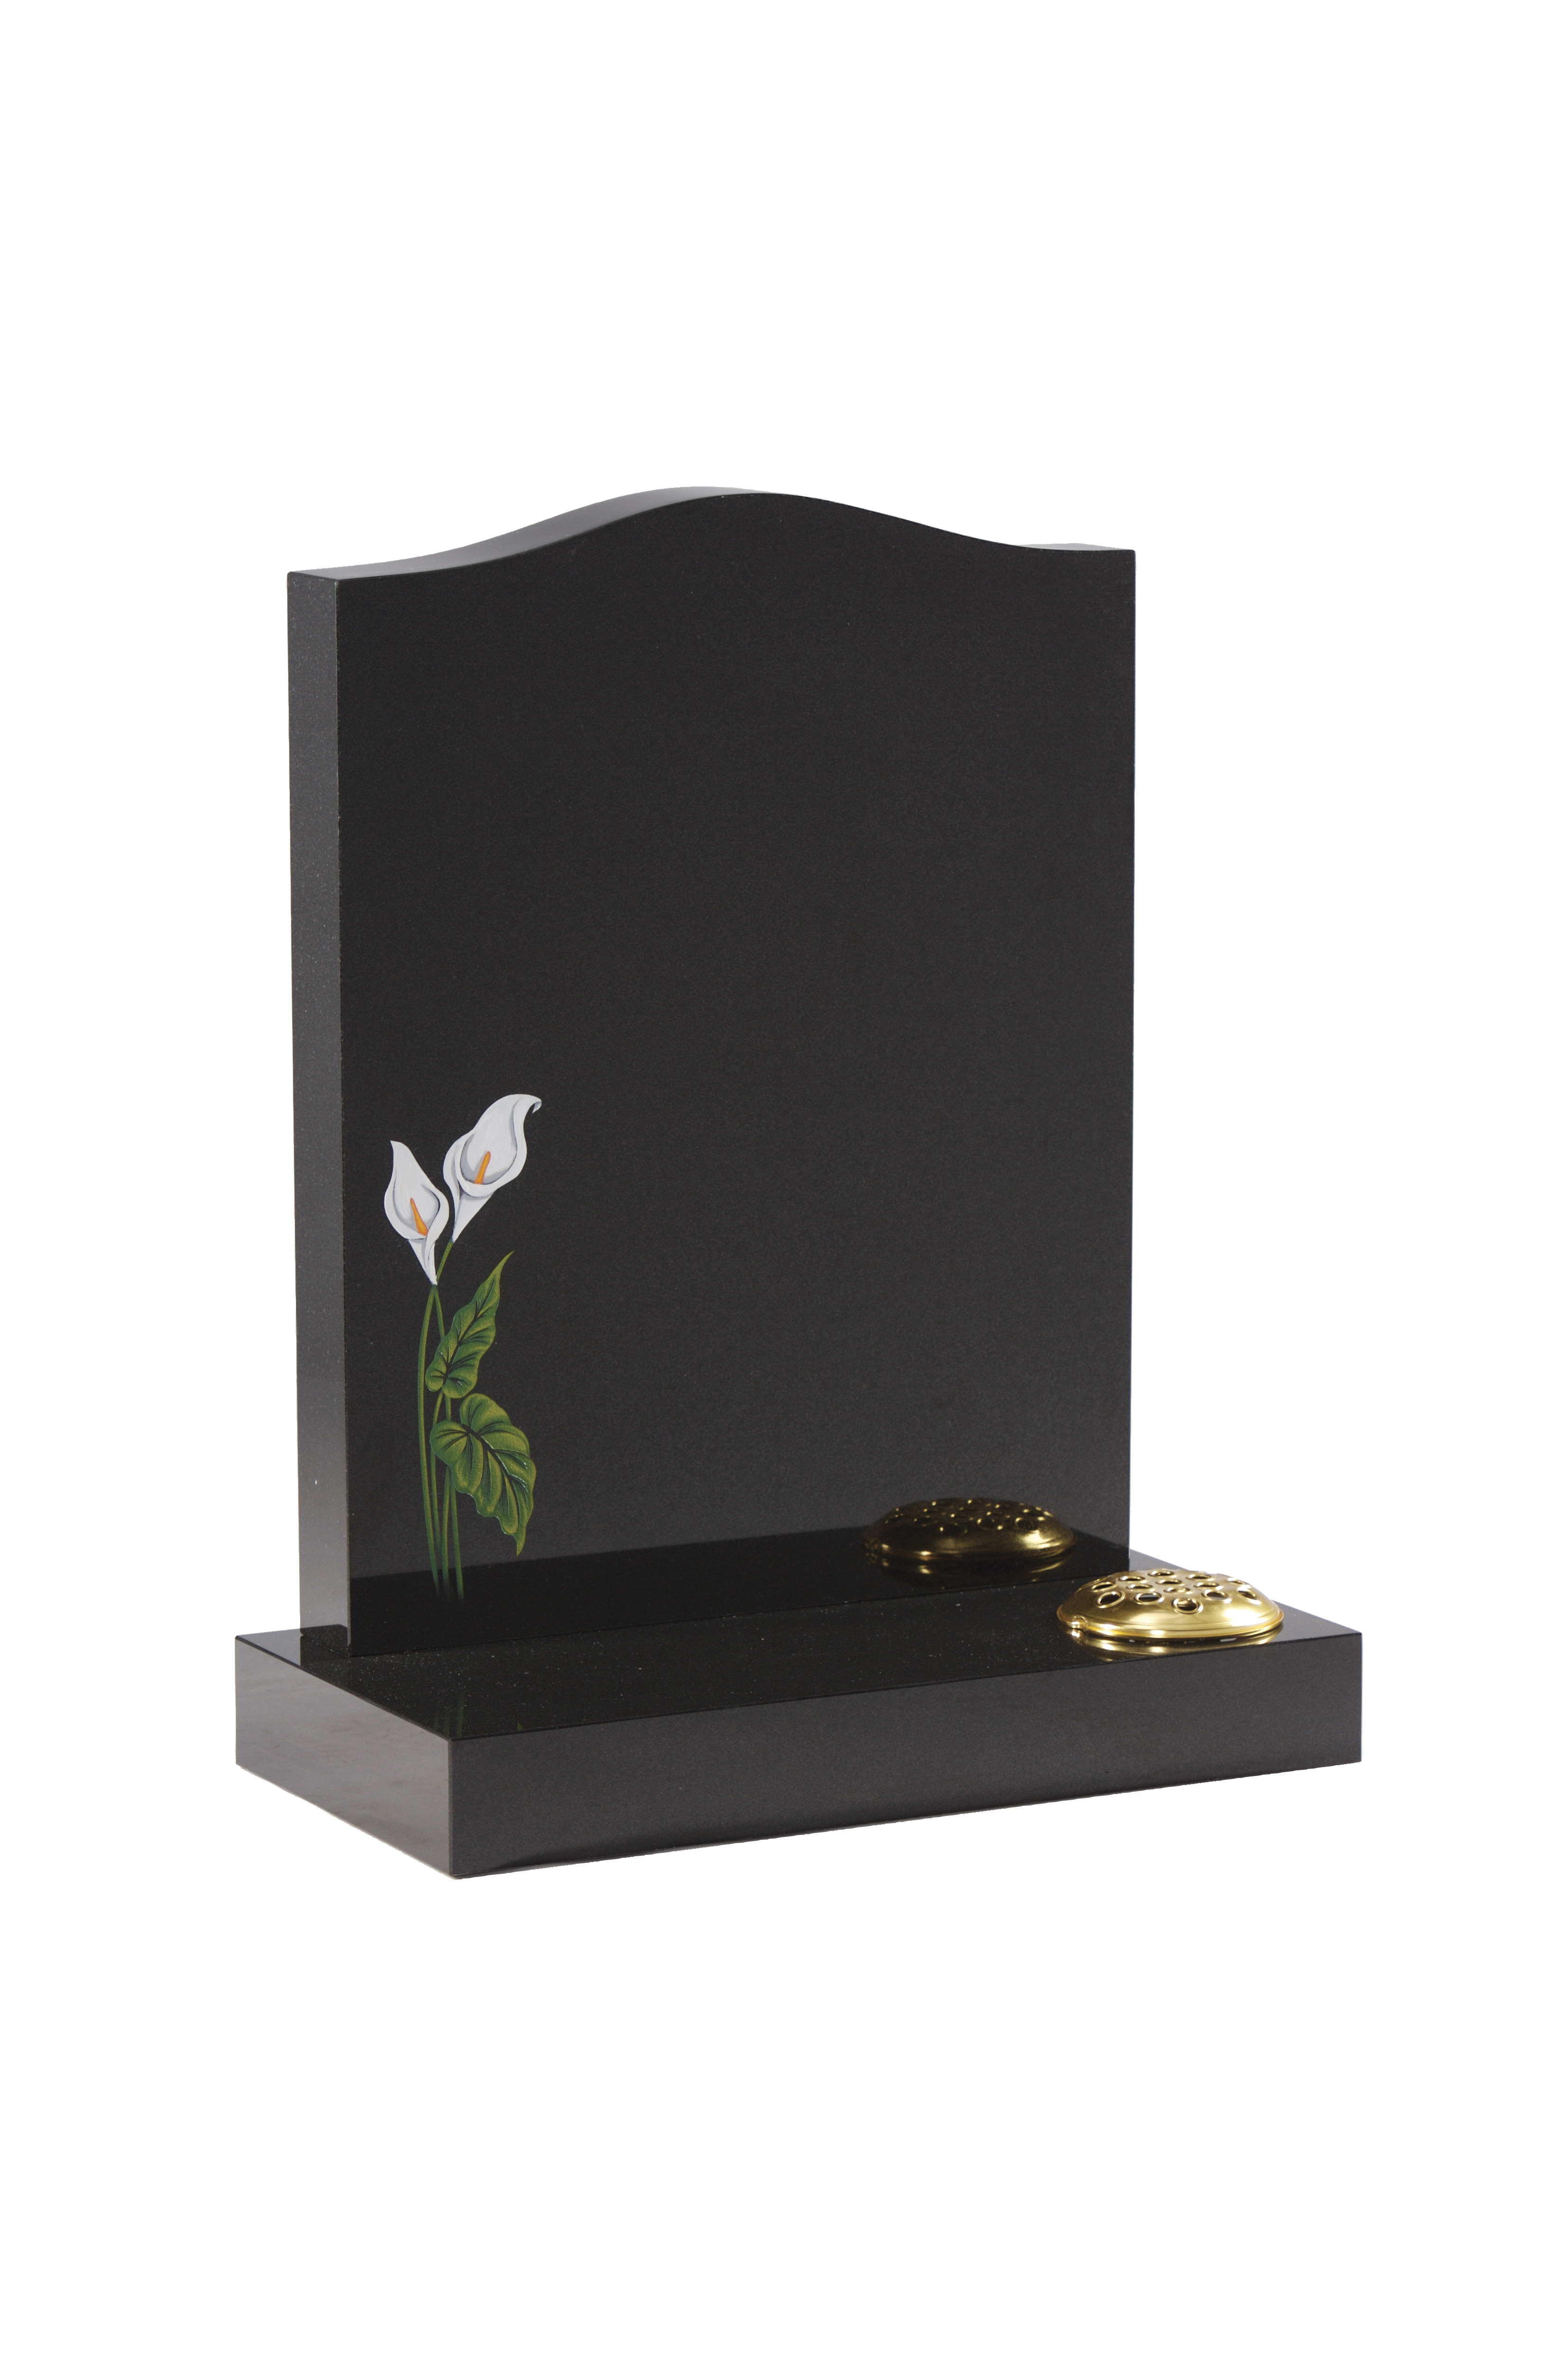 granite cemetery vases suppliers of halton memorials products and services halton memorials intended for polished granite headstone with flower vase hmec32